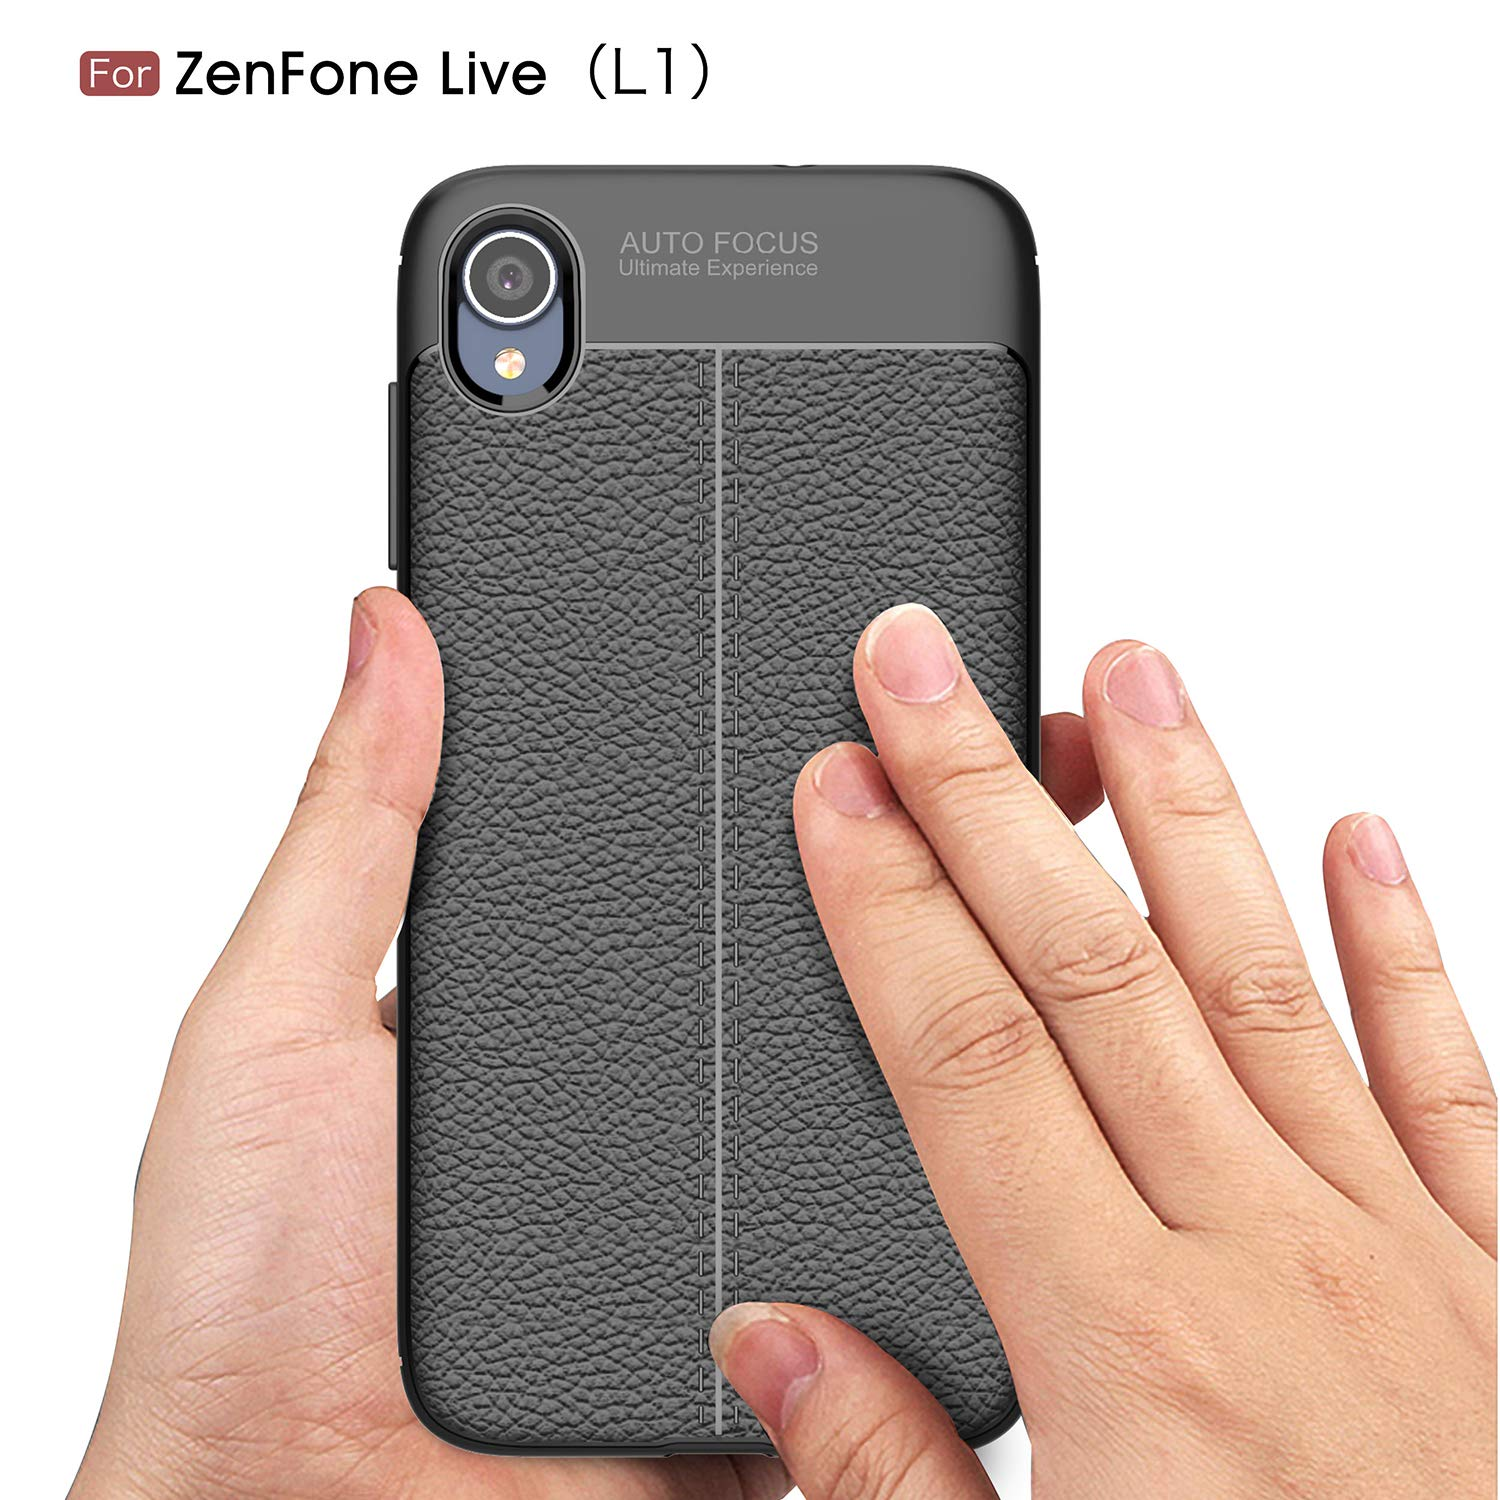 1 Screen Protector 9H Tempered Glass Protector HD Clear Film-Gray for Asus Zenfone Live L1 ZA550KL Case Litchi Pattern Back Cover Ultra-Thin TPU Bumper